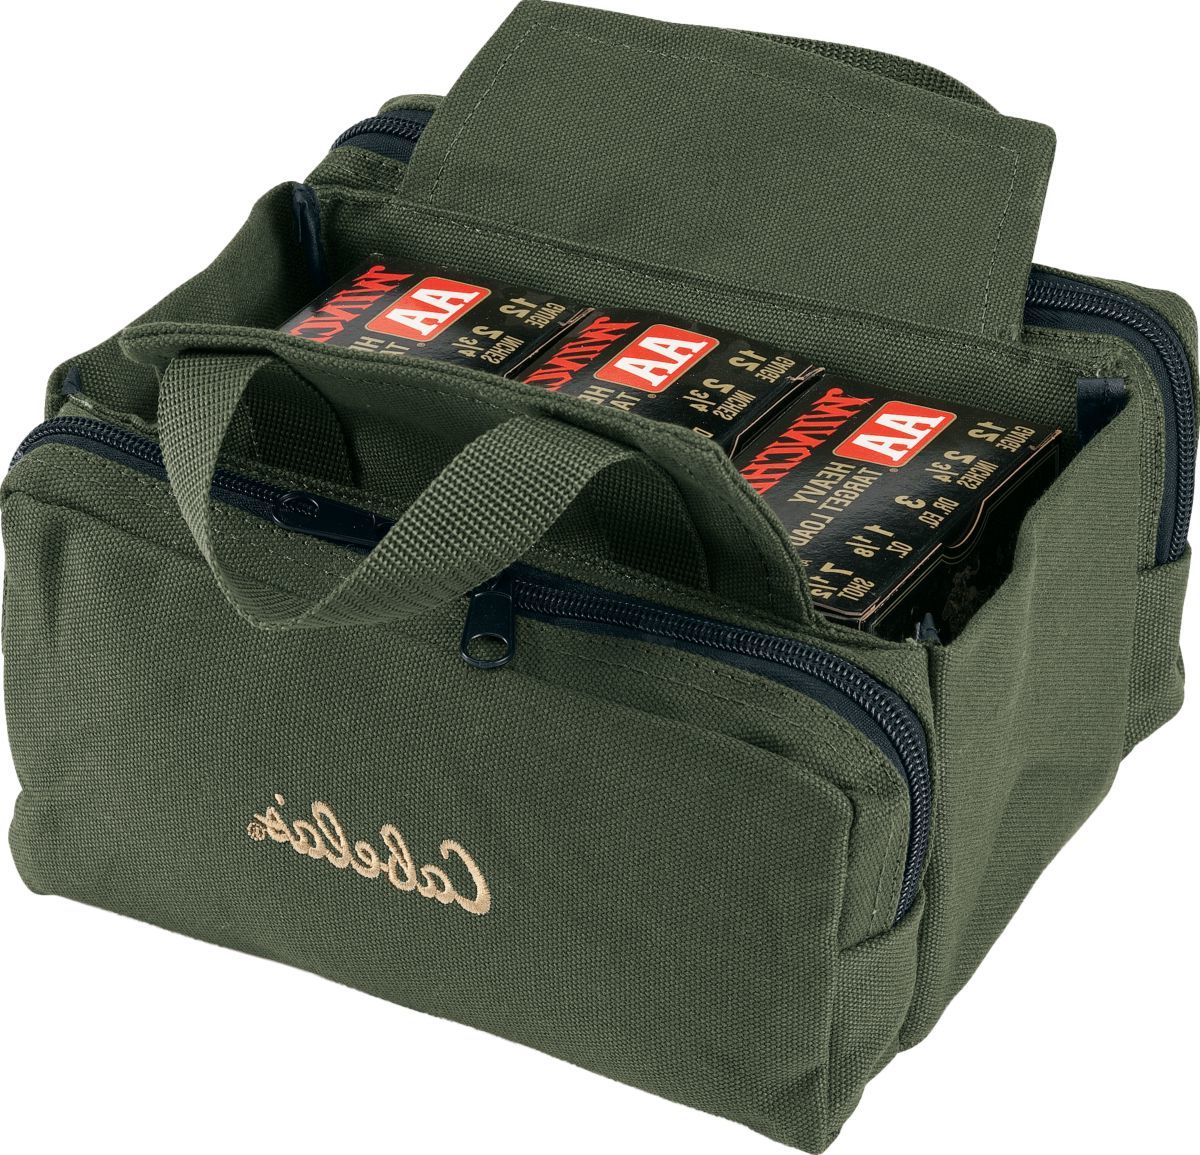 Cabela's Deluxe Canvas Shotshell Carrier